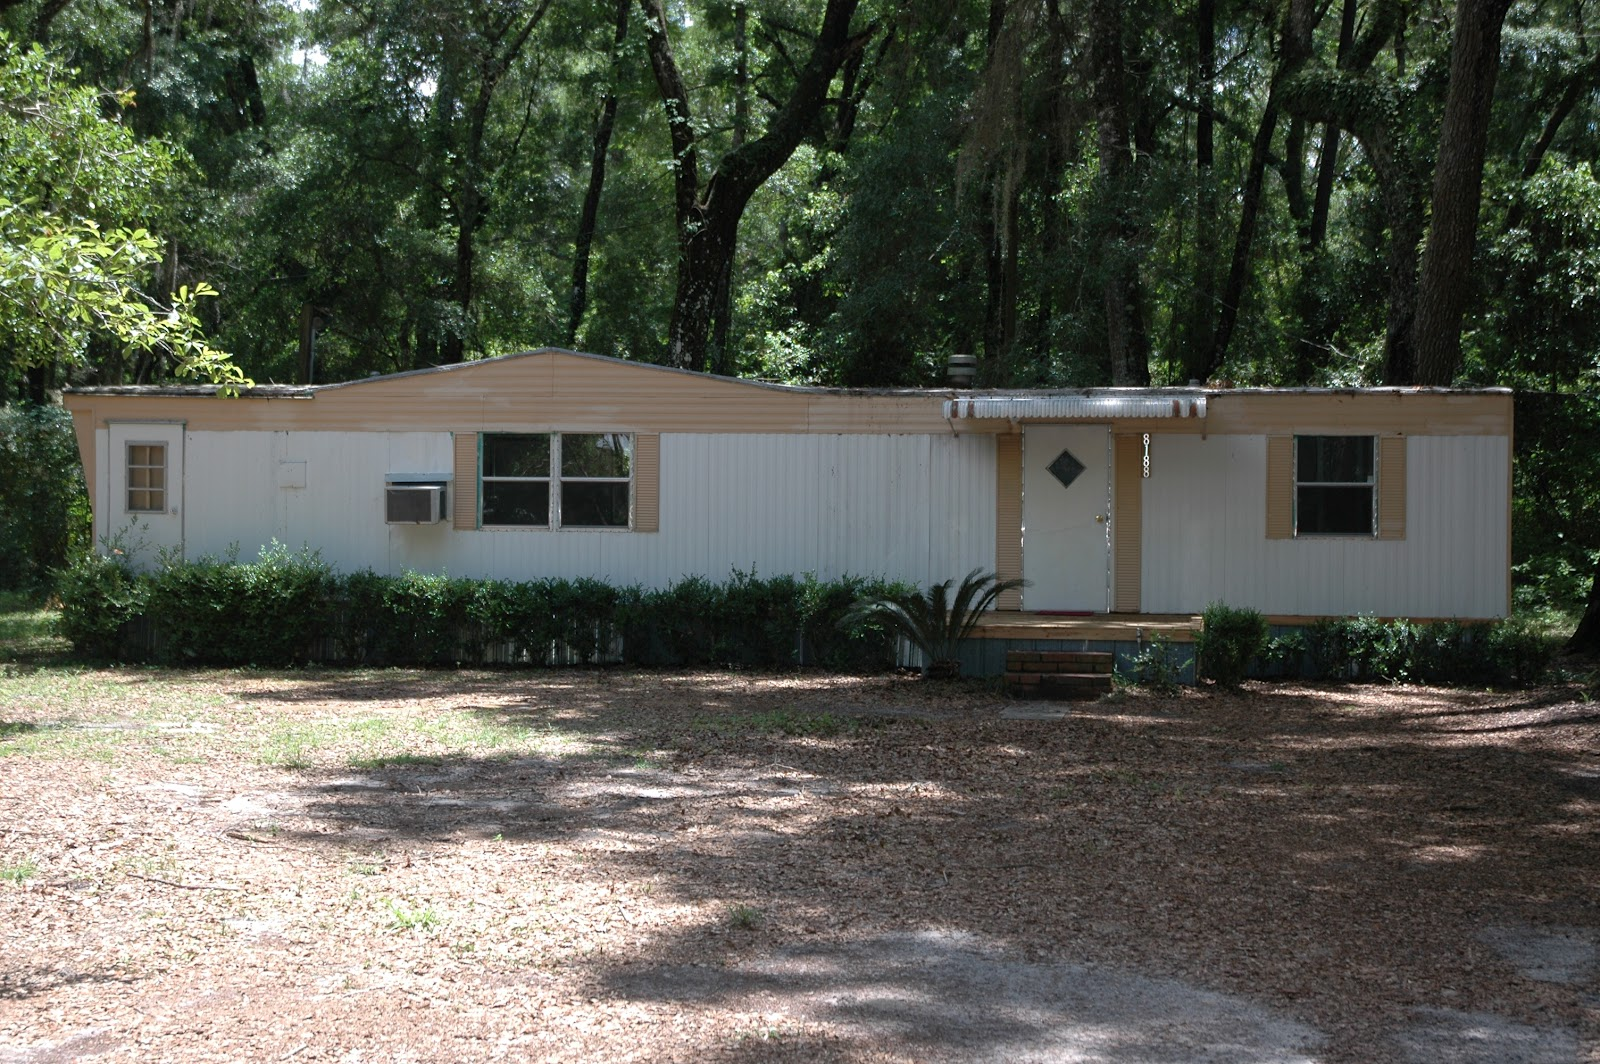 Suwannee valley properties inc owner finance 3bed 2 for 1 bed 1 bath mobile homes